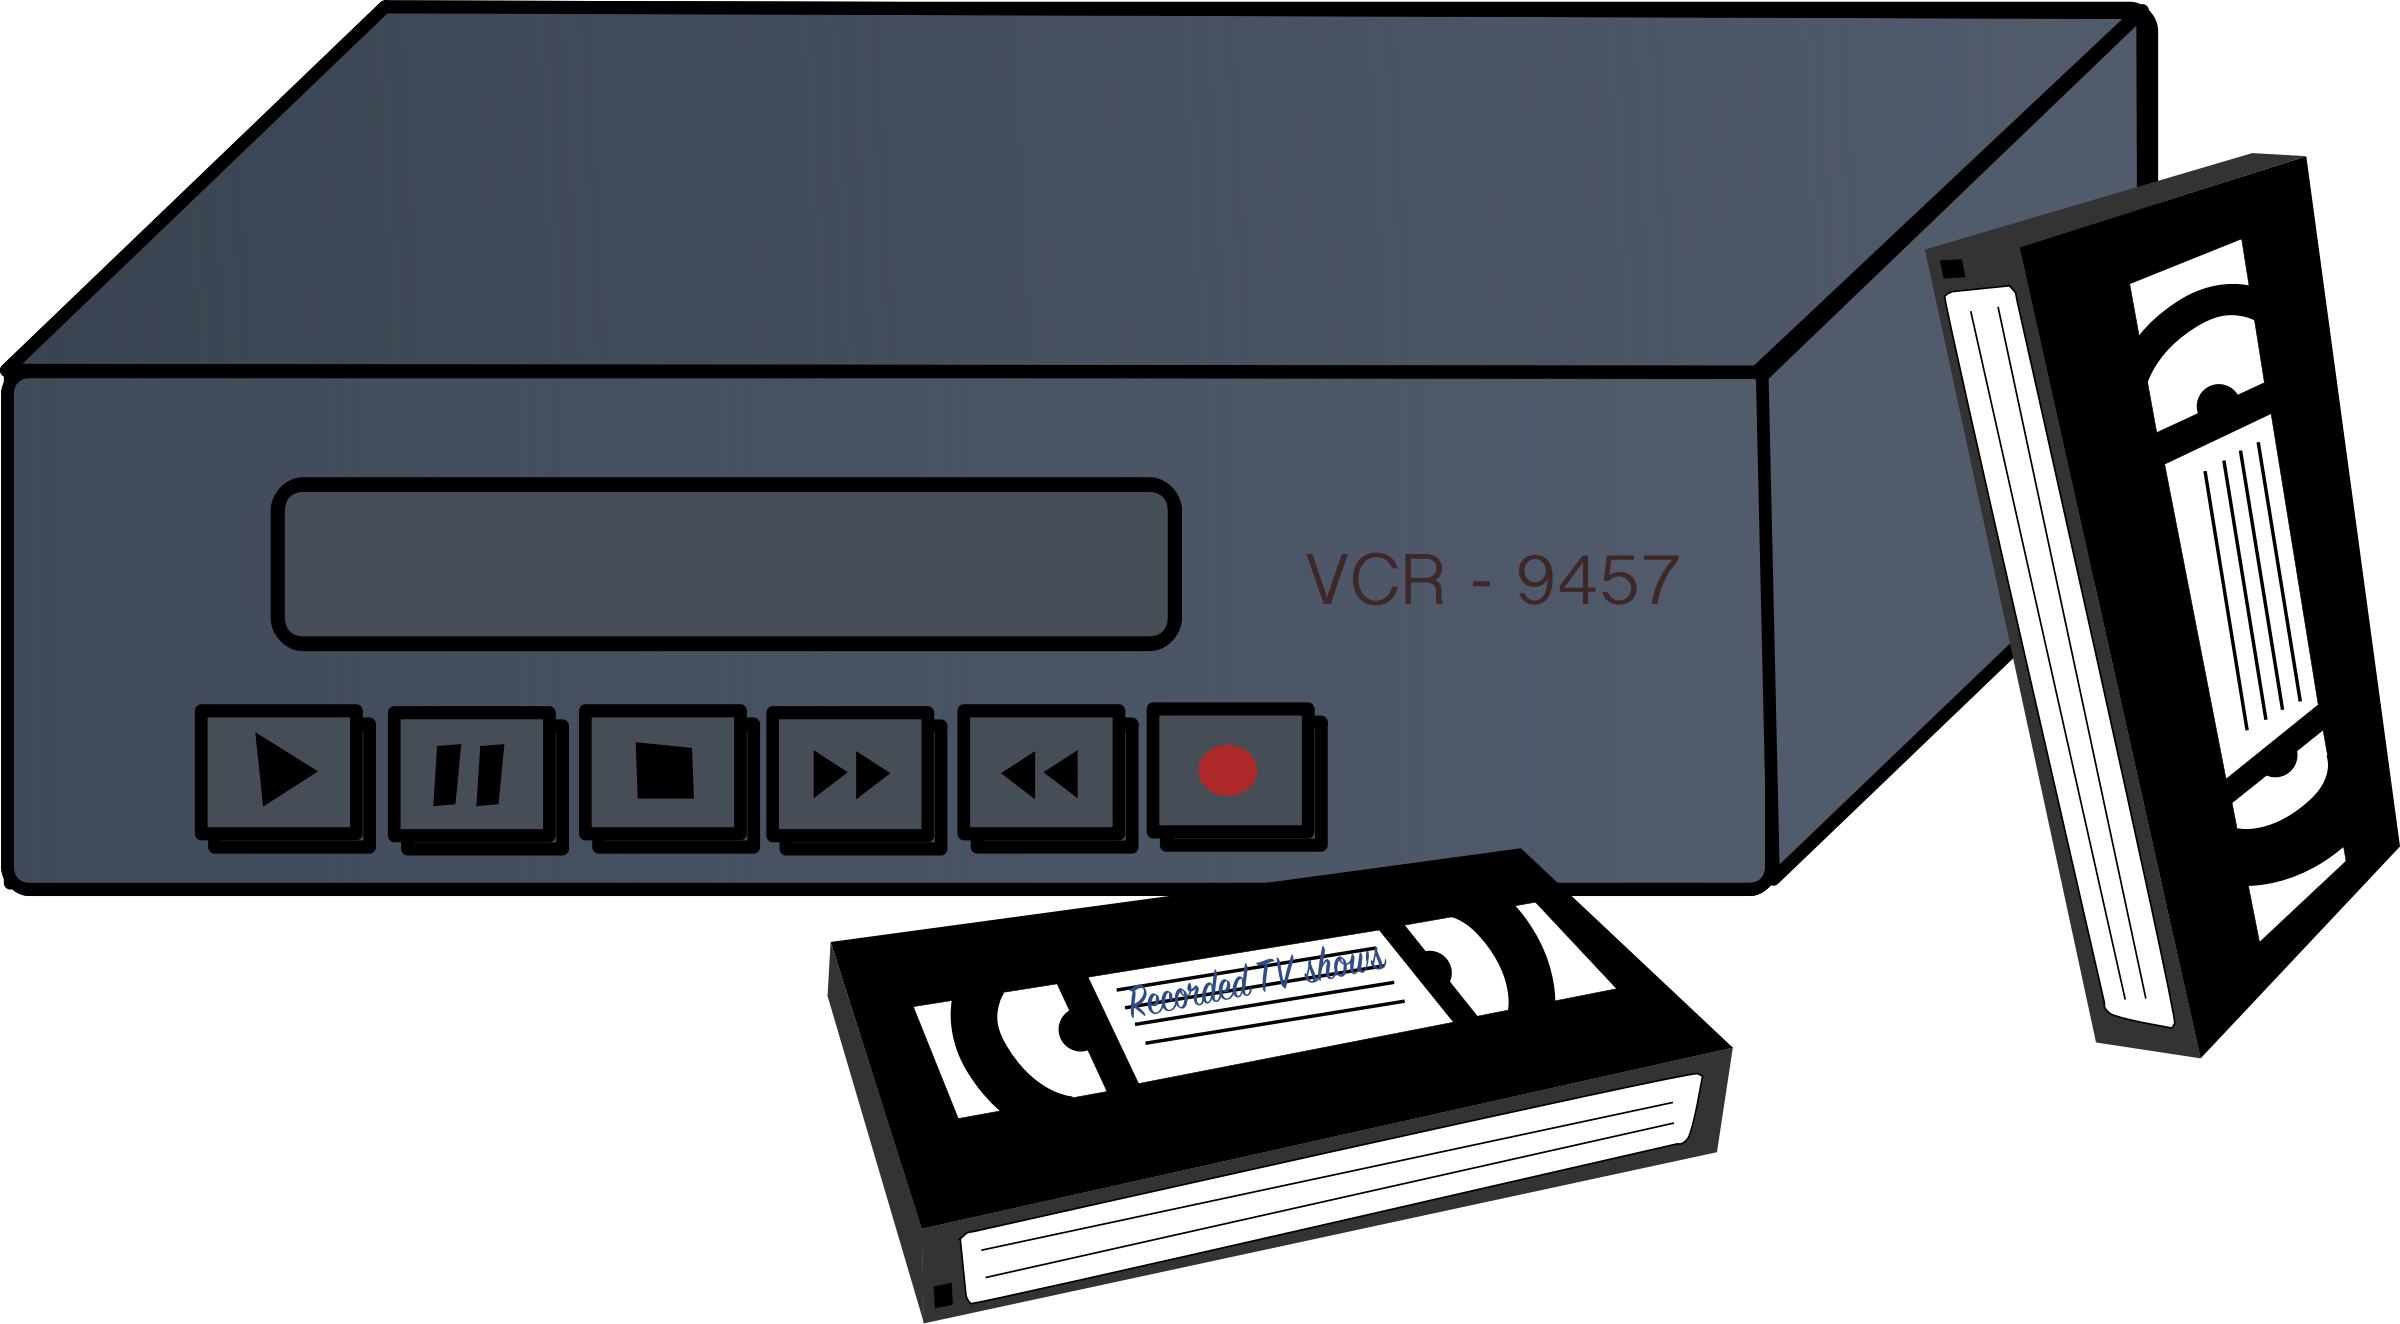 VCR and Tapes by j4p4n